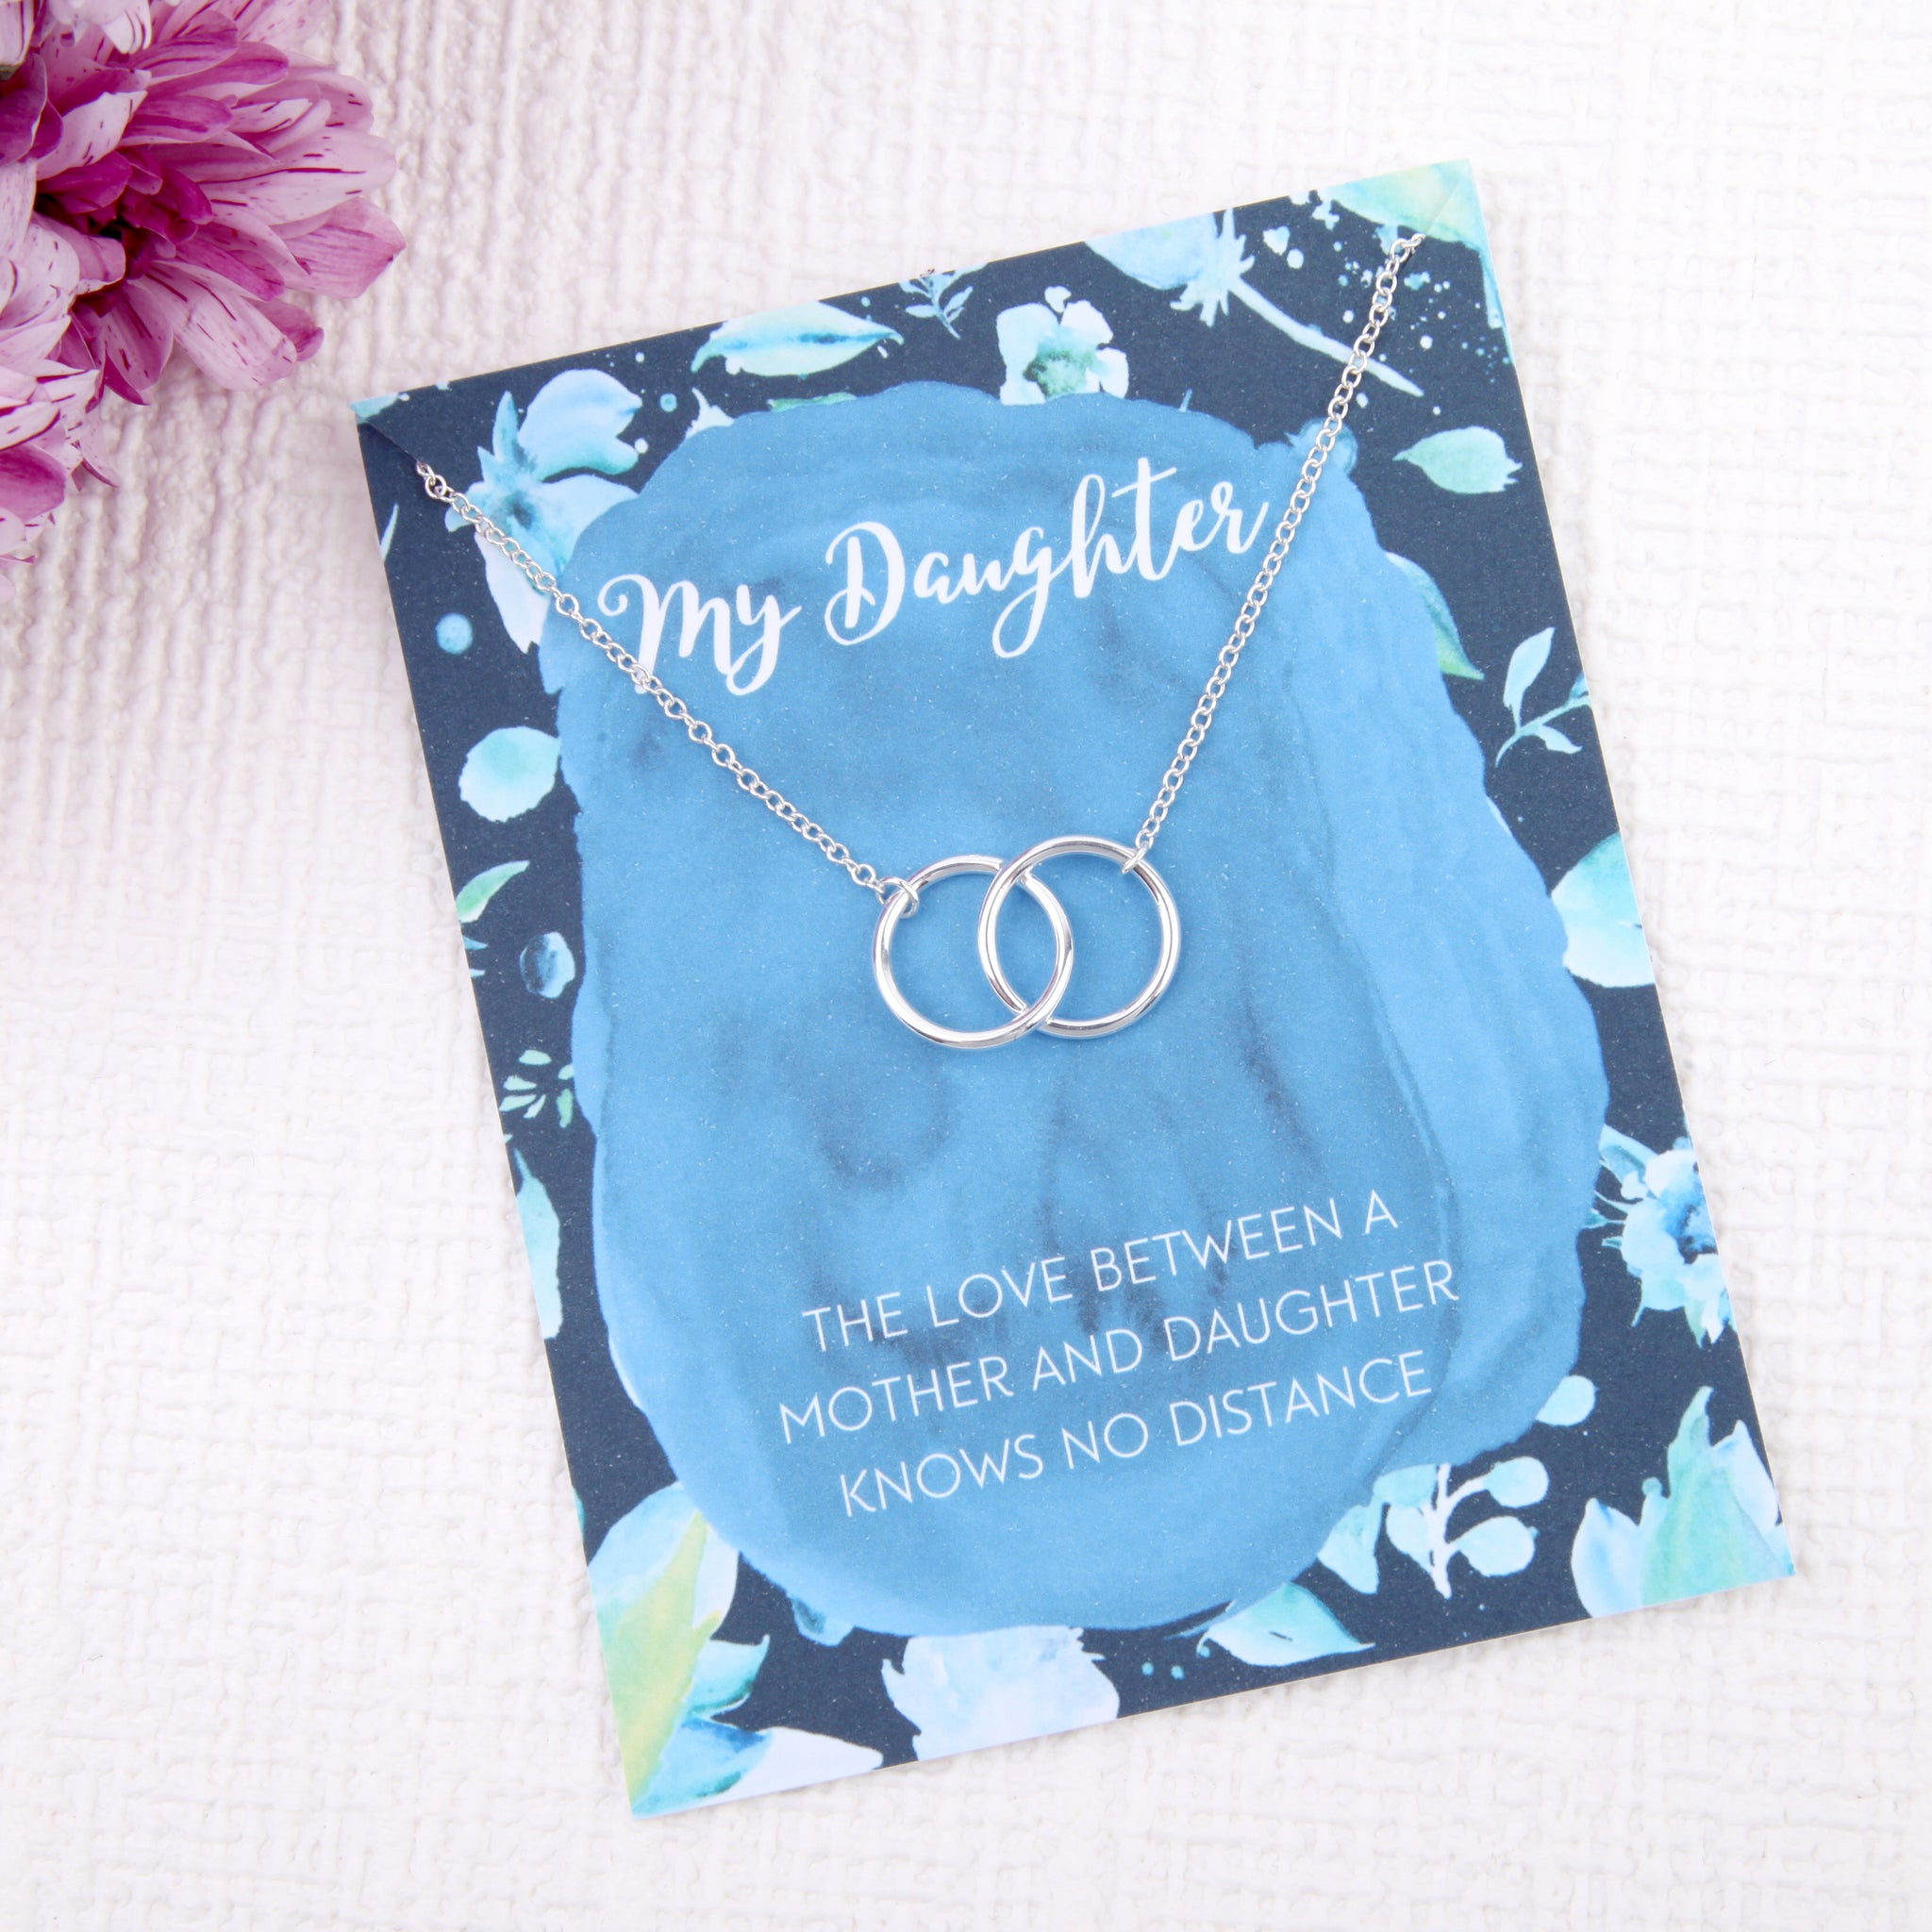 Daughter gifts entwined circles message card necklace - Statement Made Jewellery